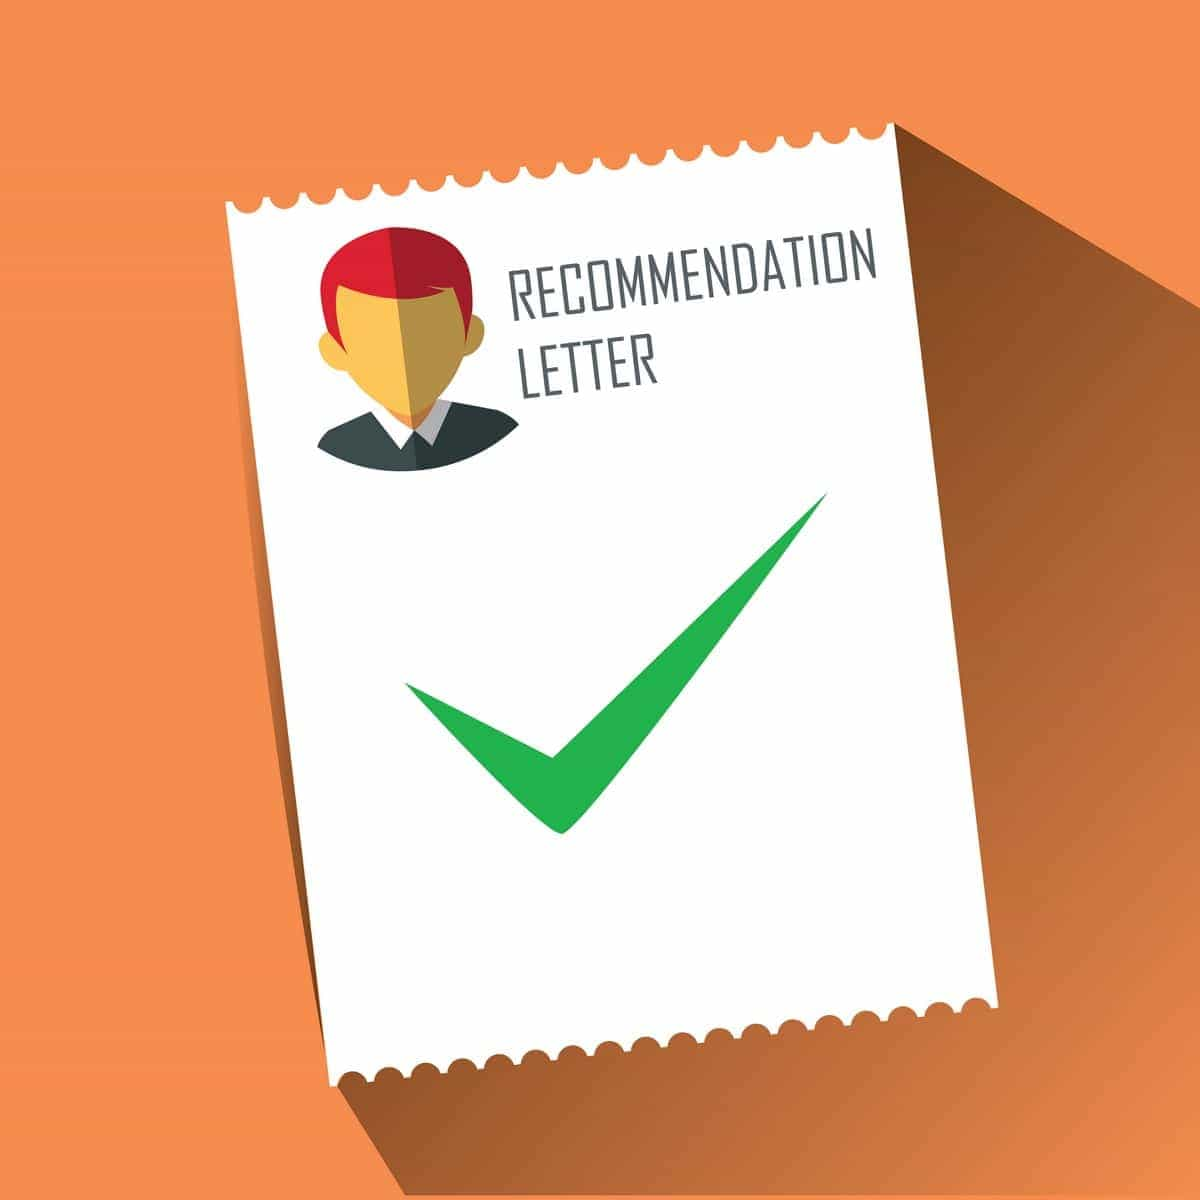 How To Ask For A Recommendation Letter?